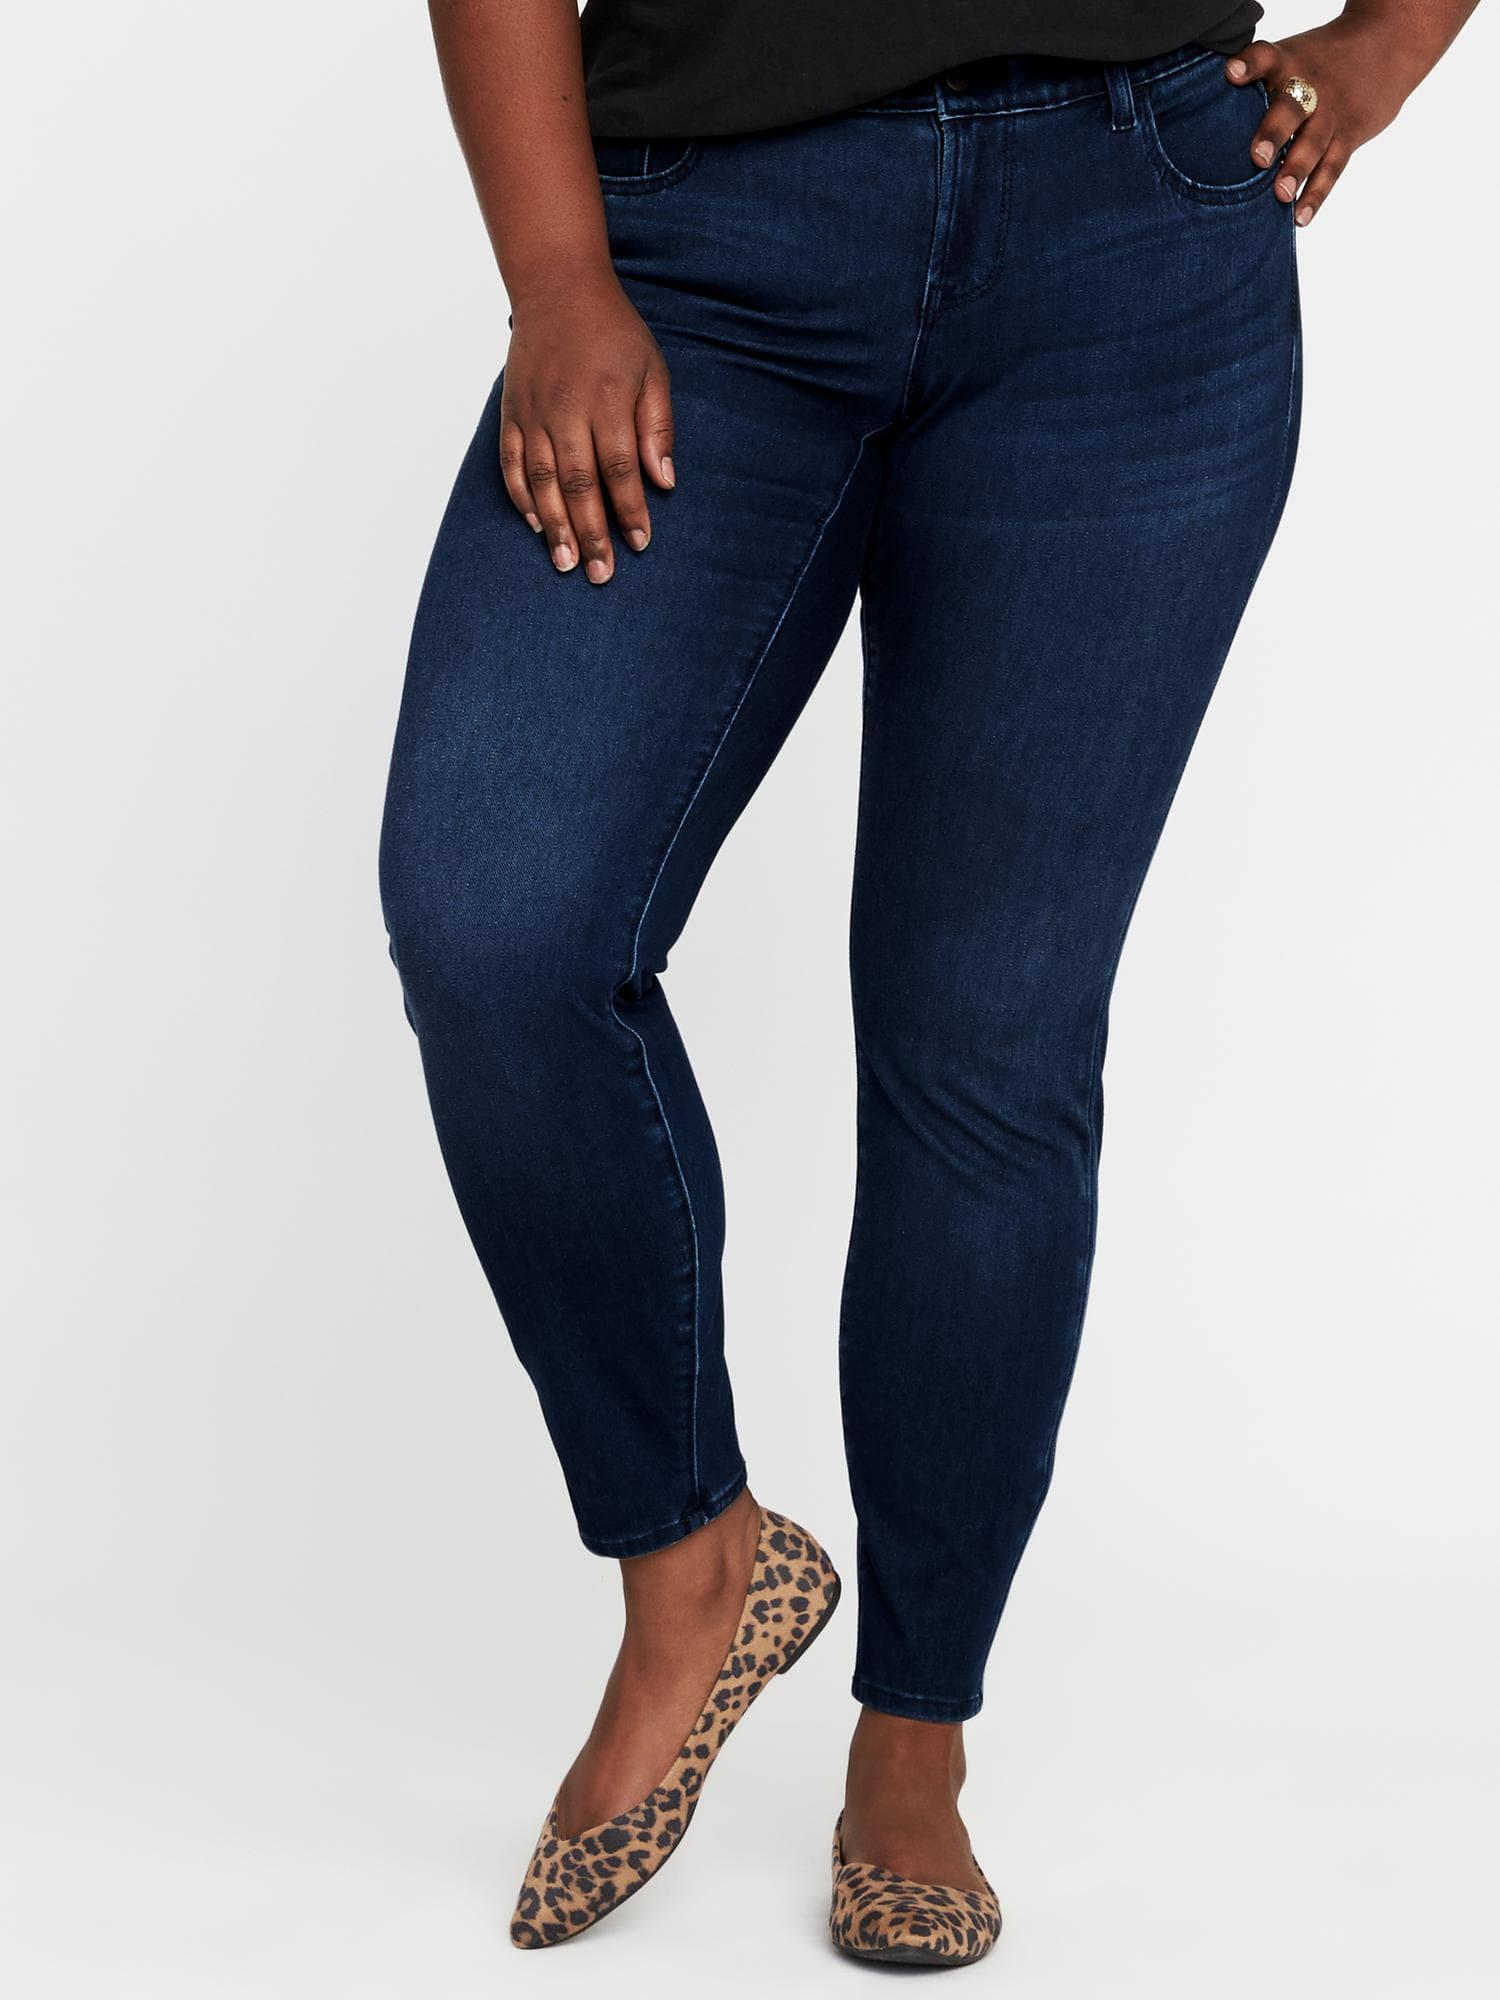 74ff62a663c Old Navy. Women s Blue High-rise Secret-slim Pockets + Waistband Plus-size  Rockstar 24 7 Jeans